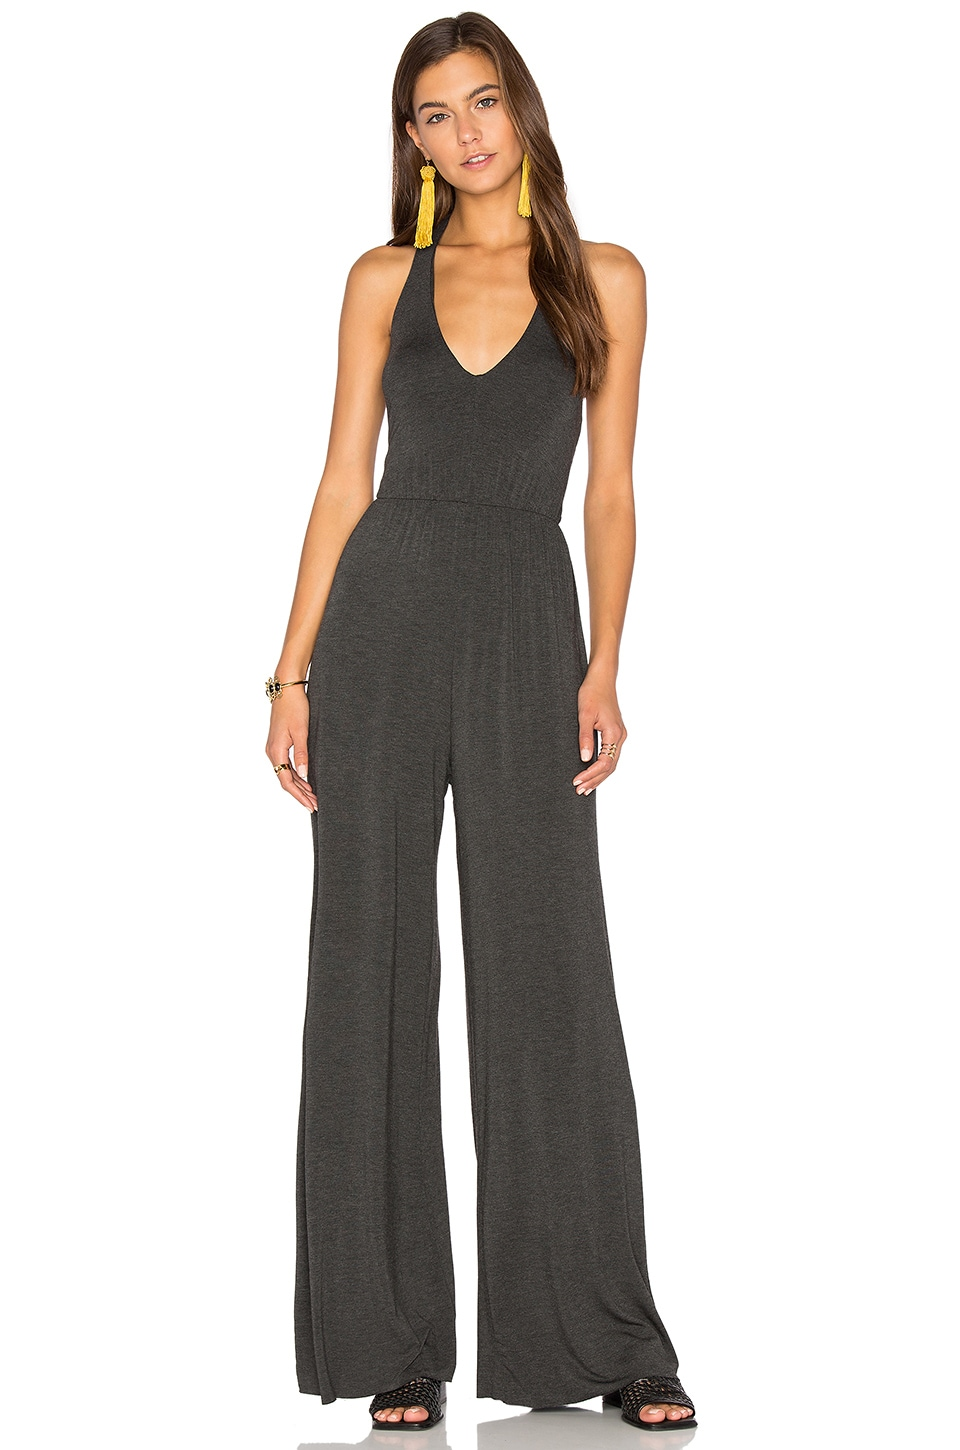 Clayton Agnes Jumpsuit in Charcoal